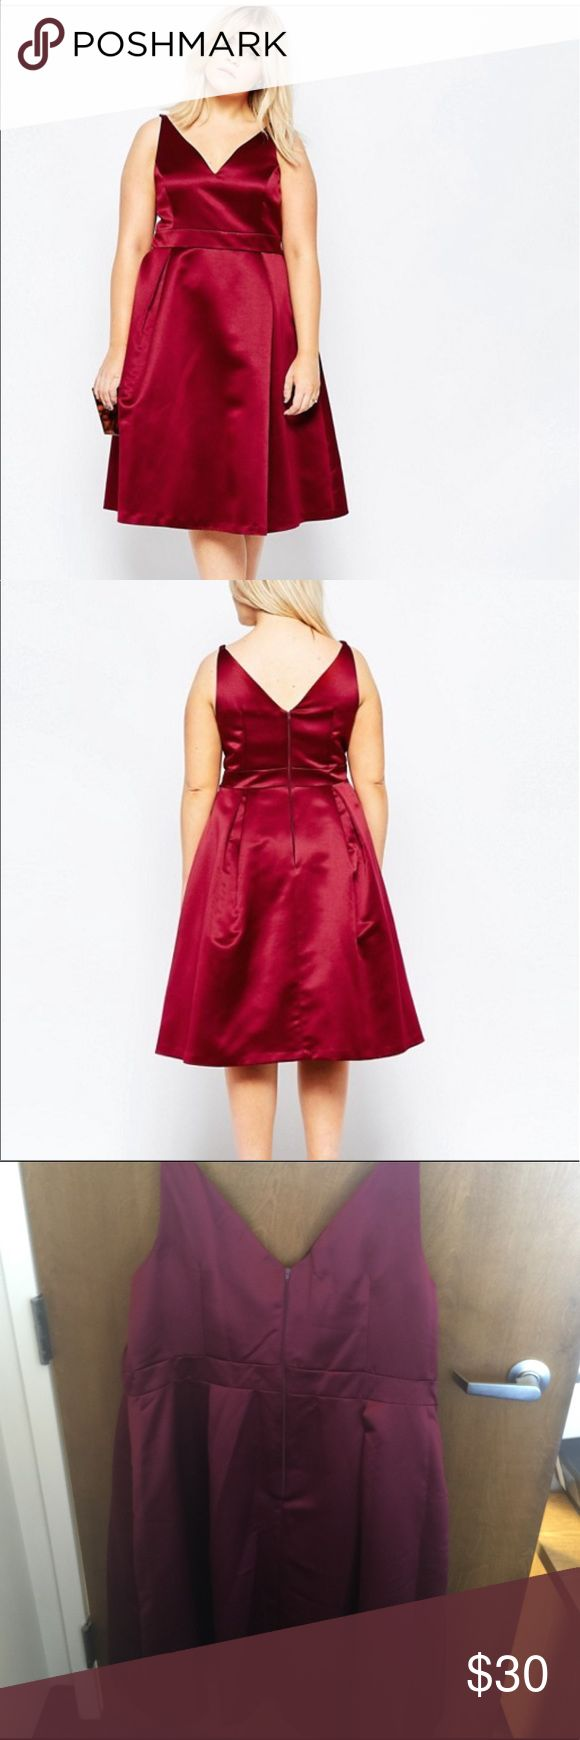 Asos Curve Wine Colored Dress Wine Colored Satin Dress perfect for a wedding or formal bridal shower. Size US 22. Only worn to take photos. The picture shows how the dress would fit without shapewear. I wear a size 24 the dress is a size 22 ASOS Curve Dresses